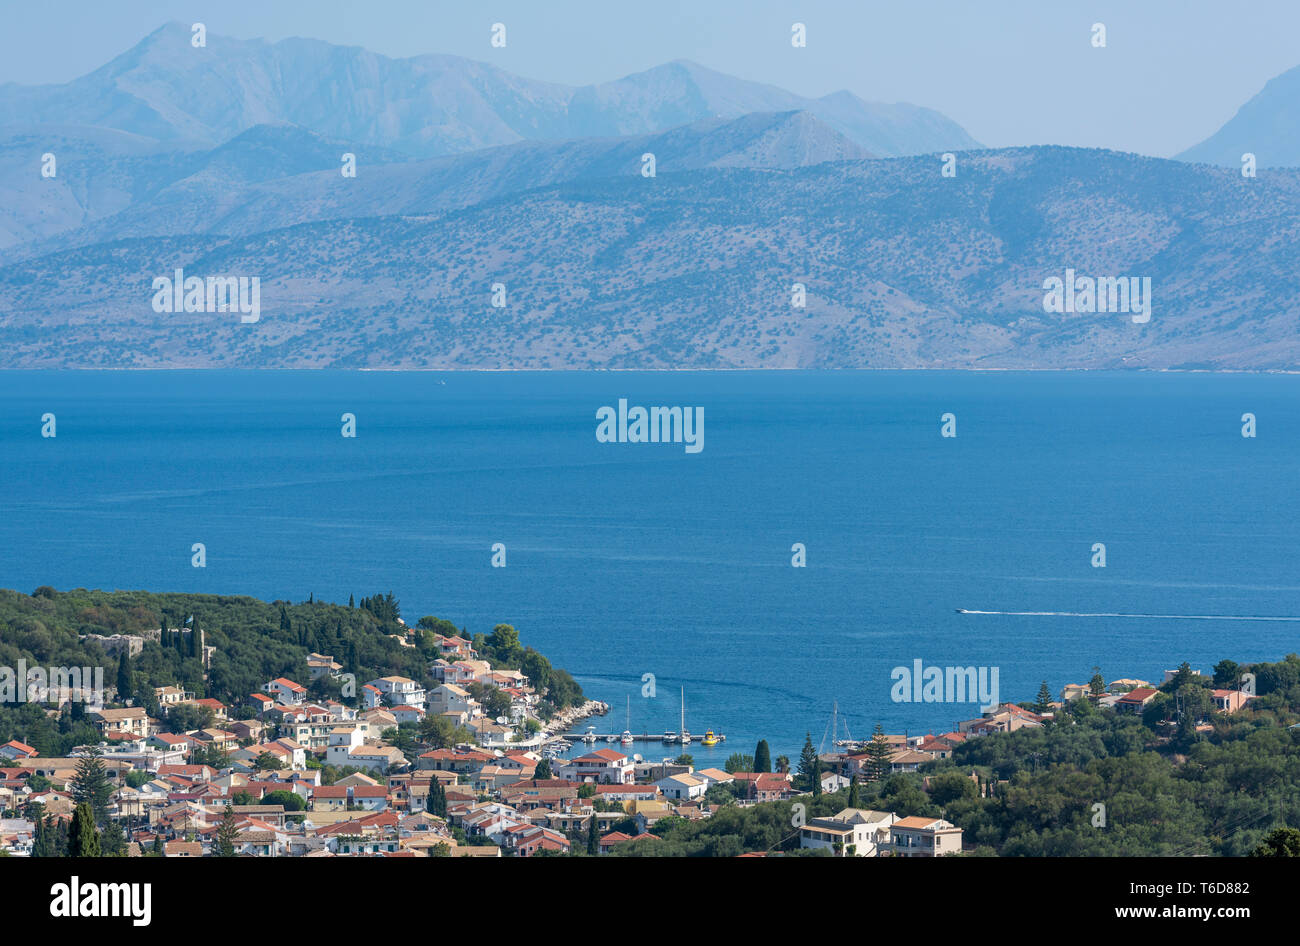 Kassiopi on the North East coast of the Greek island of Corfu in Greece with the Albanian coast in the background. - Stock Image